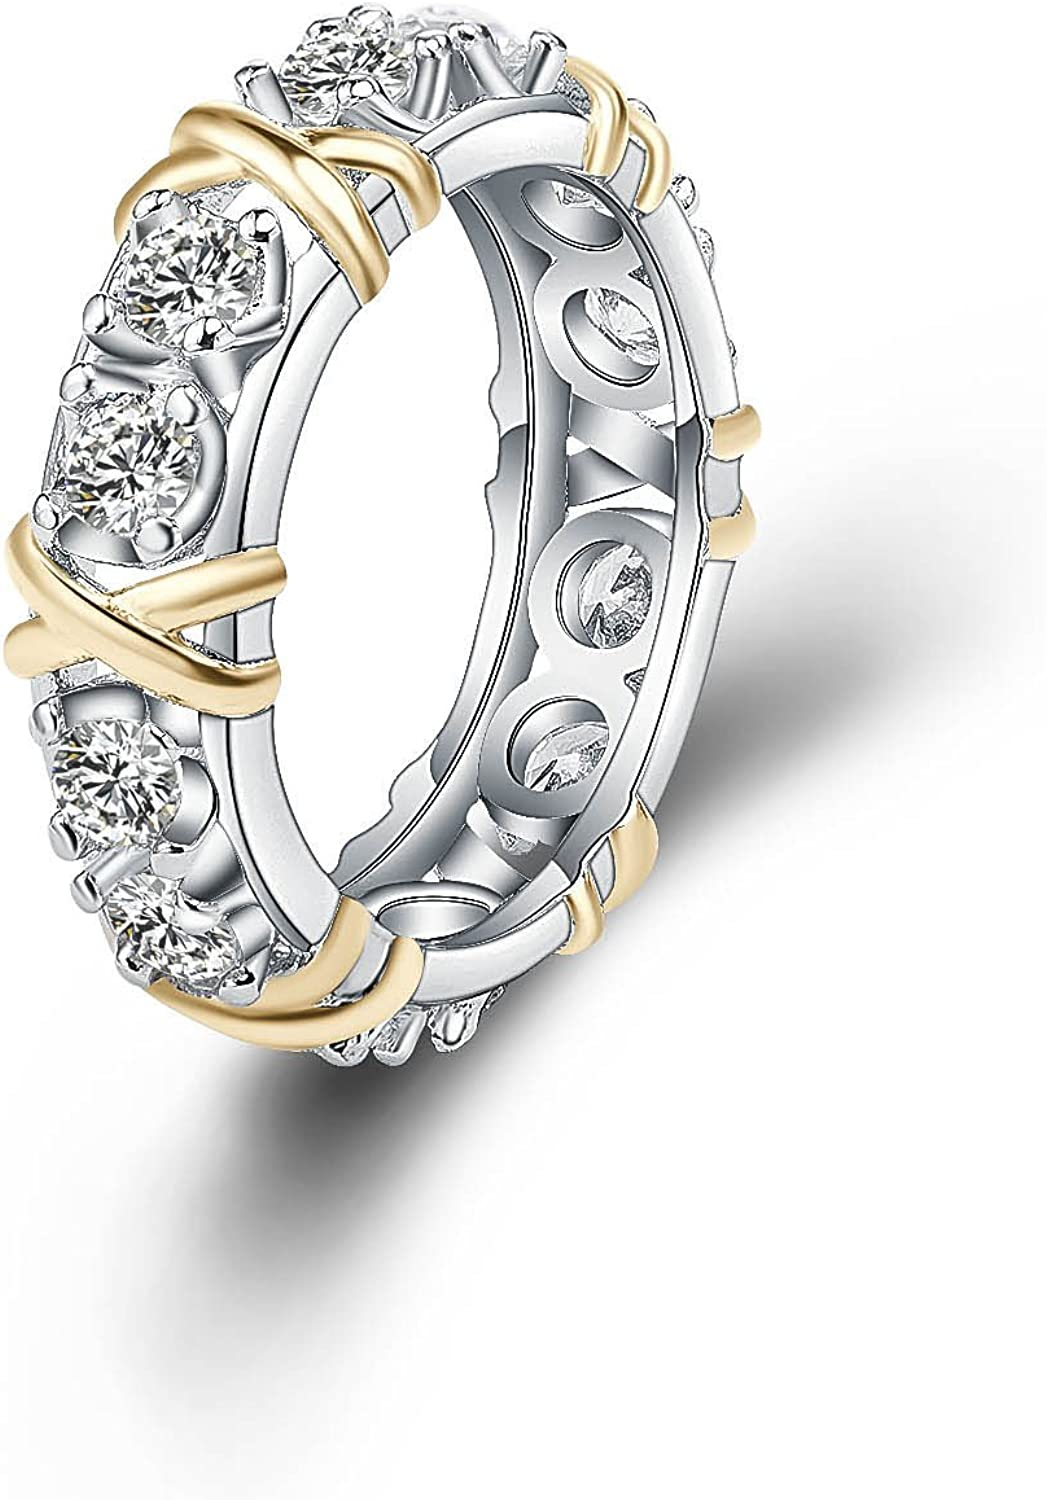 Ginger Lyne Collection Charmaine X's and O's Anniversary Wedding Band Ring